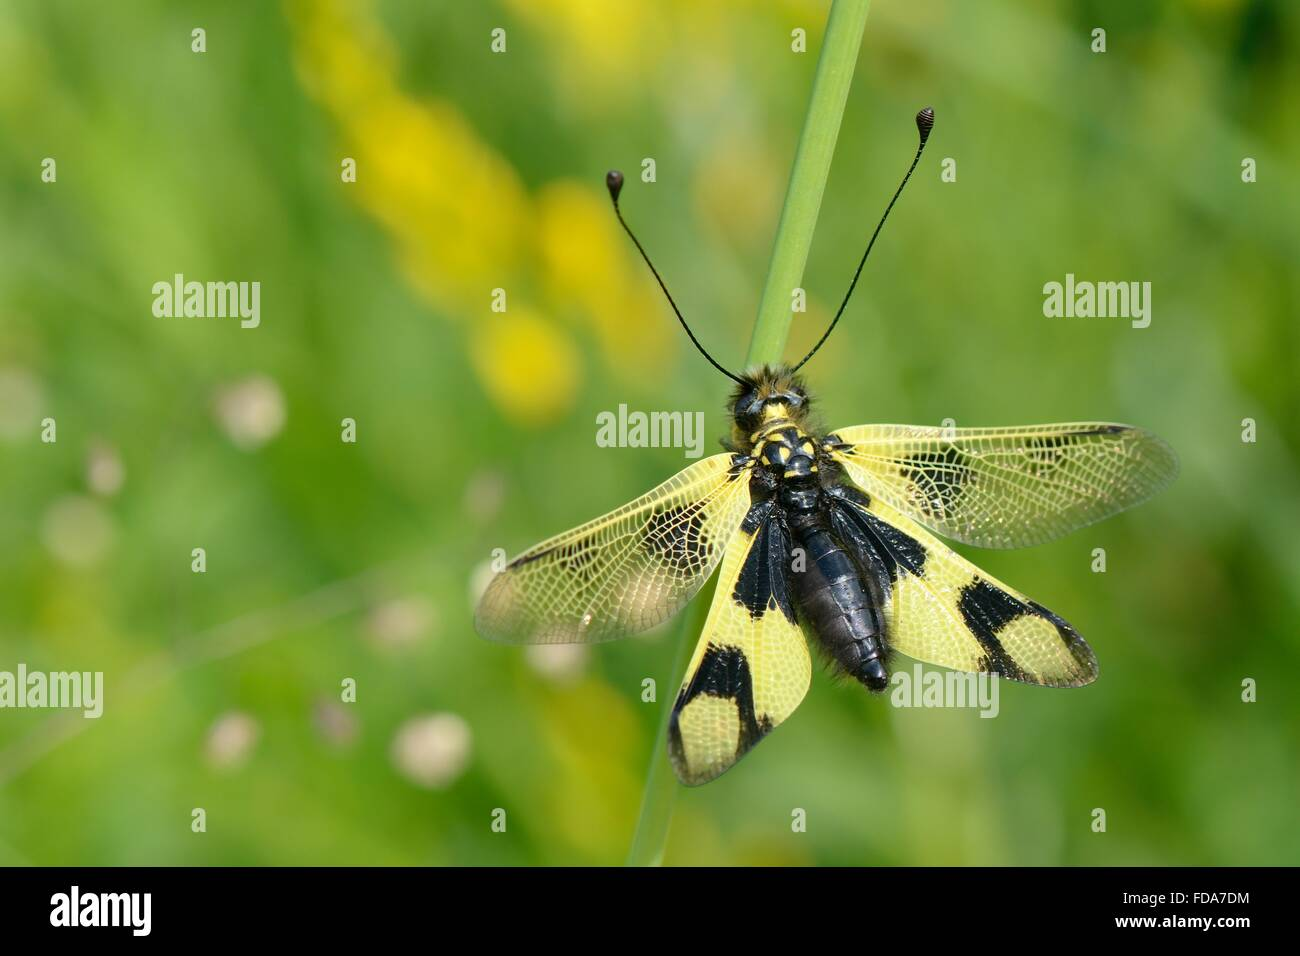 Owlfly (Libelloides longicornis) resting on a plant stem in an alpine flower meadow, Sutjeska Park, Bosnia Herzegovina, - Stock Image